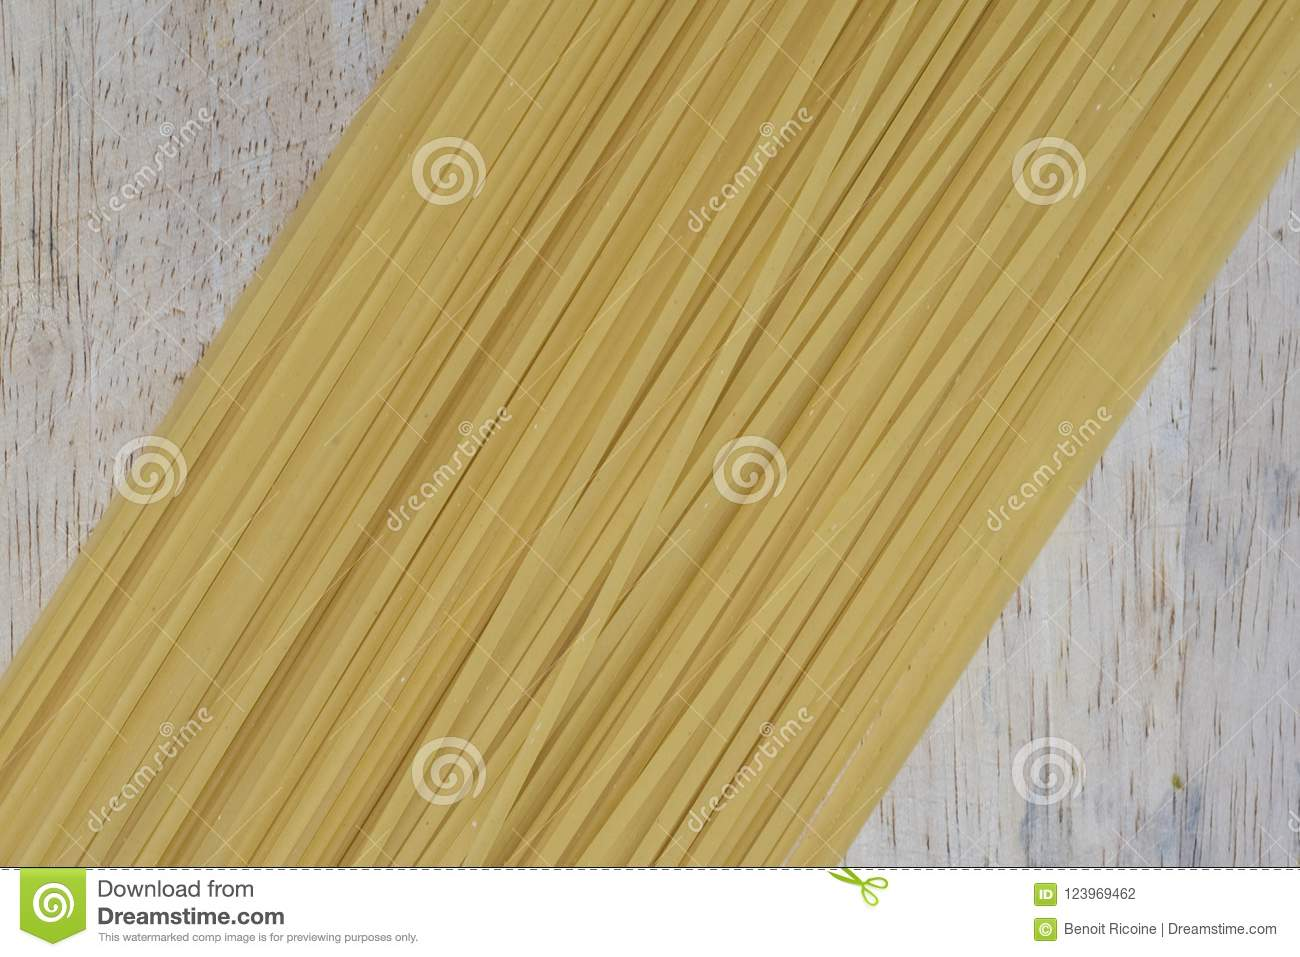 Dry pasta lined up on a board.